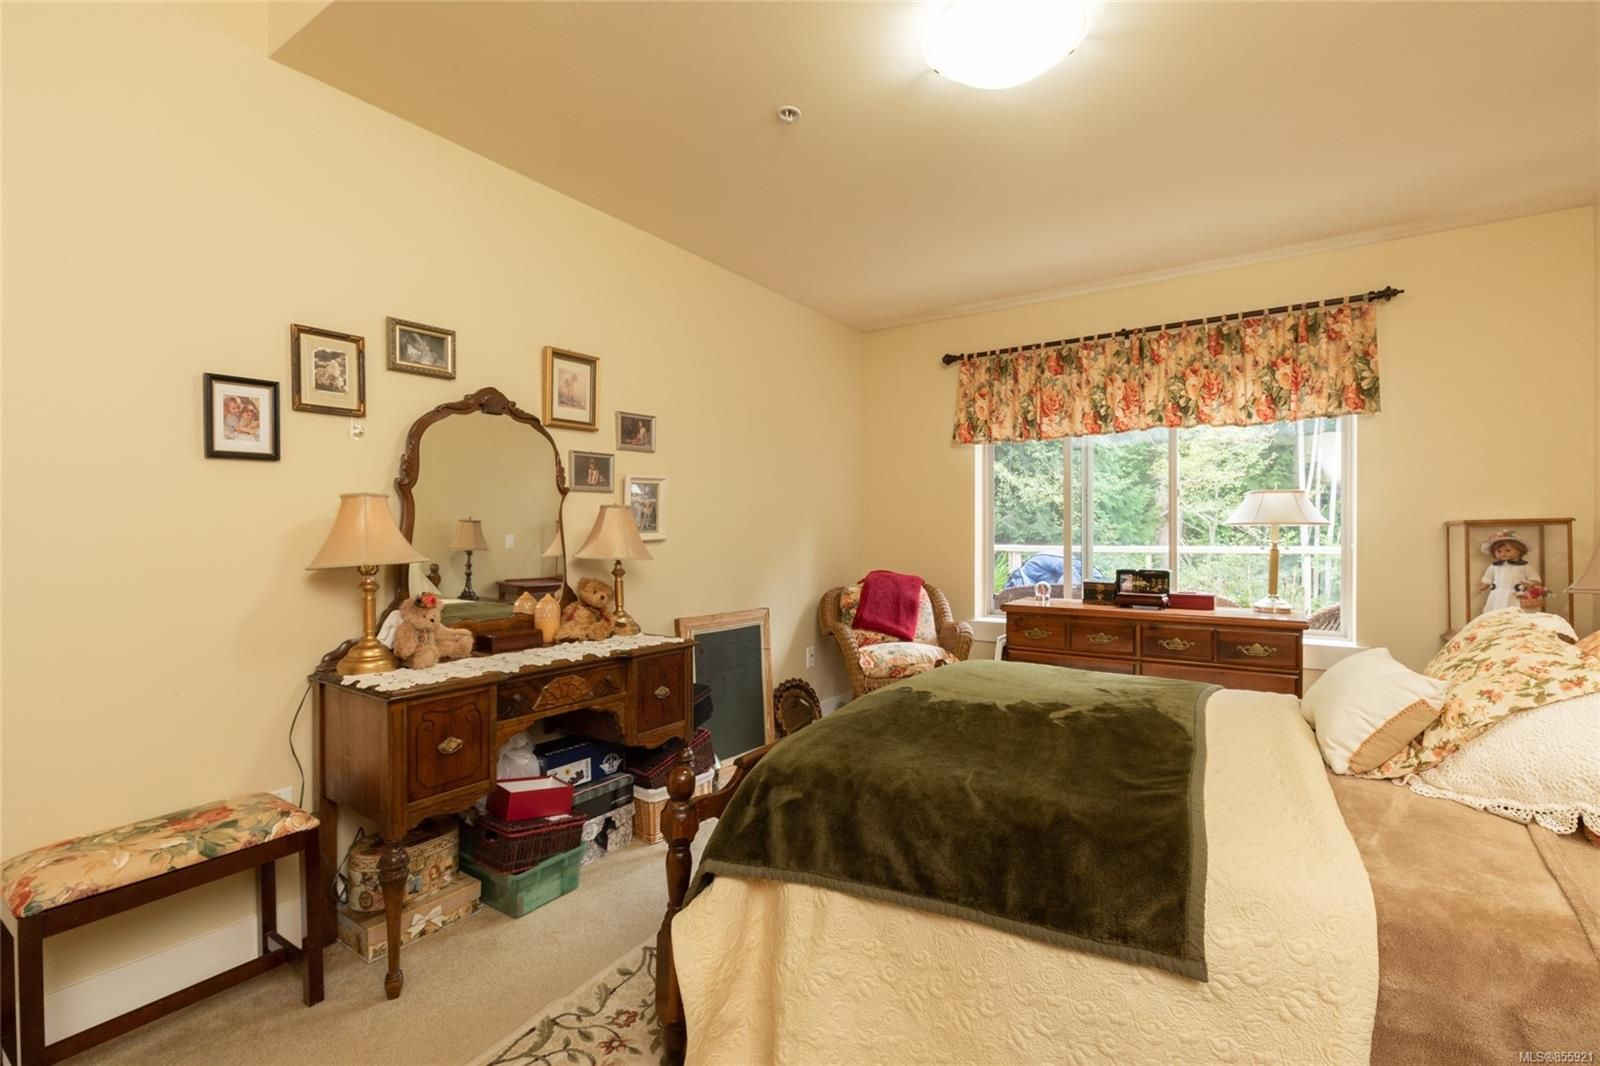 Photo 14: Photos: 206 1244 4TH Ave in : Du Ladysmith Row/Townhouse for sale (Duncan)  : MLS®# 855921